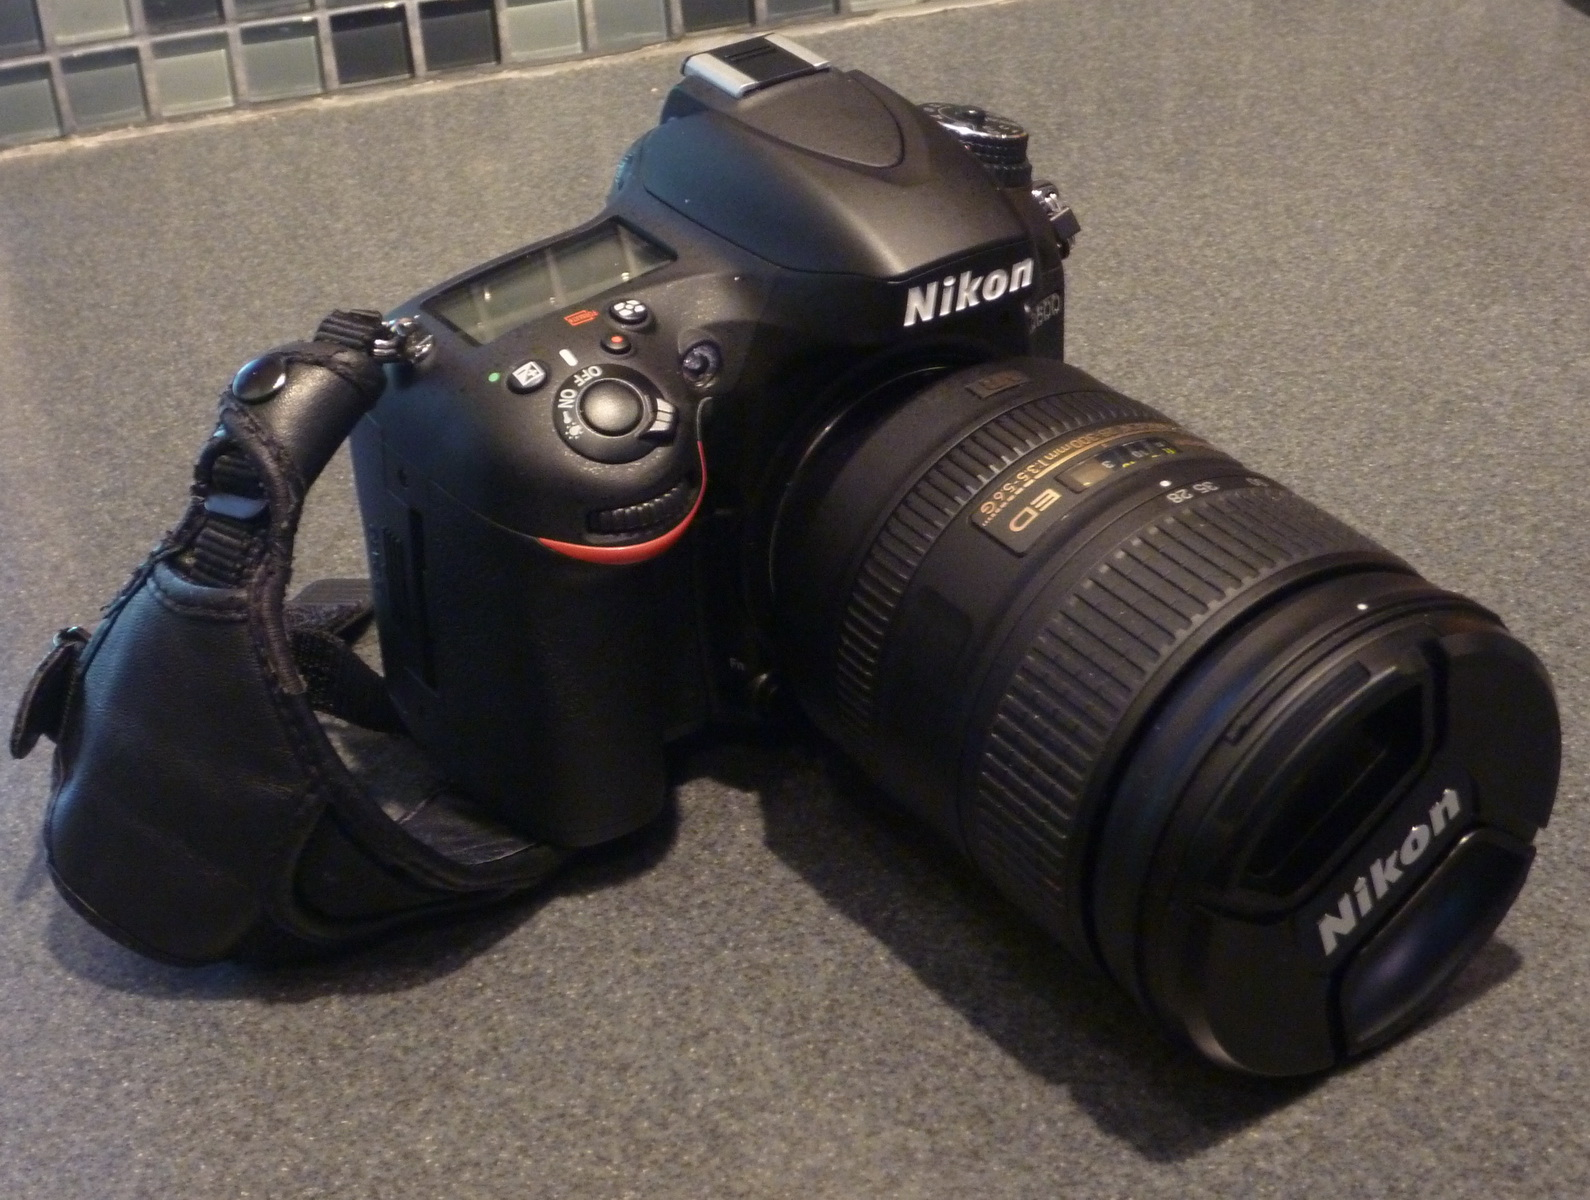 full frame time nikon d600 vs canon 6d considerations